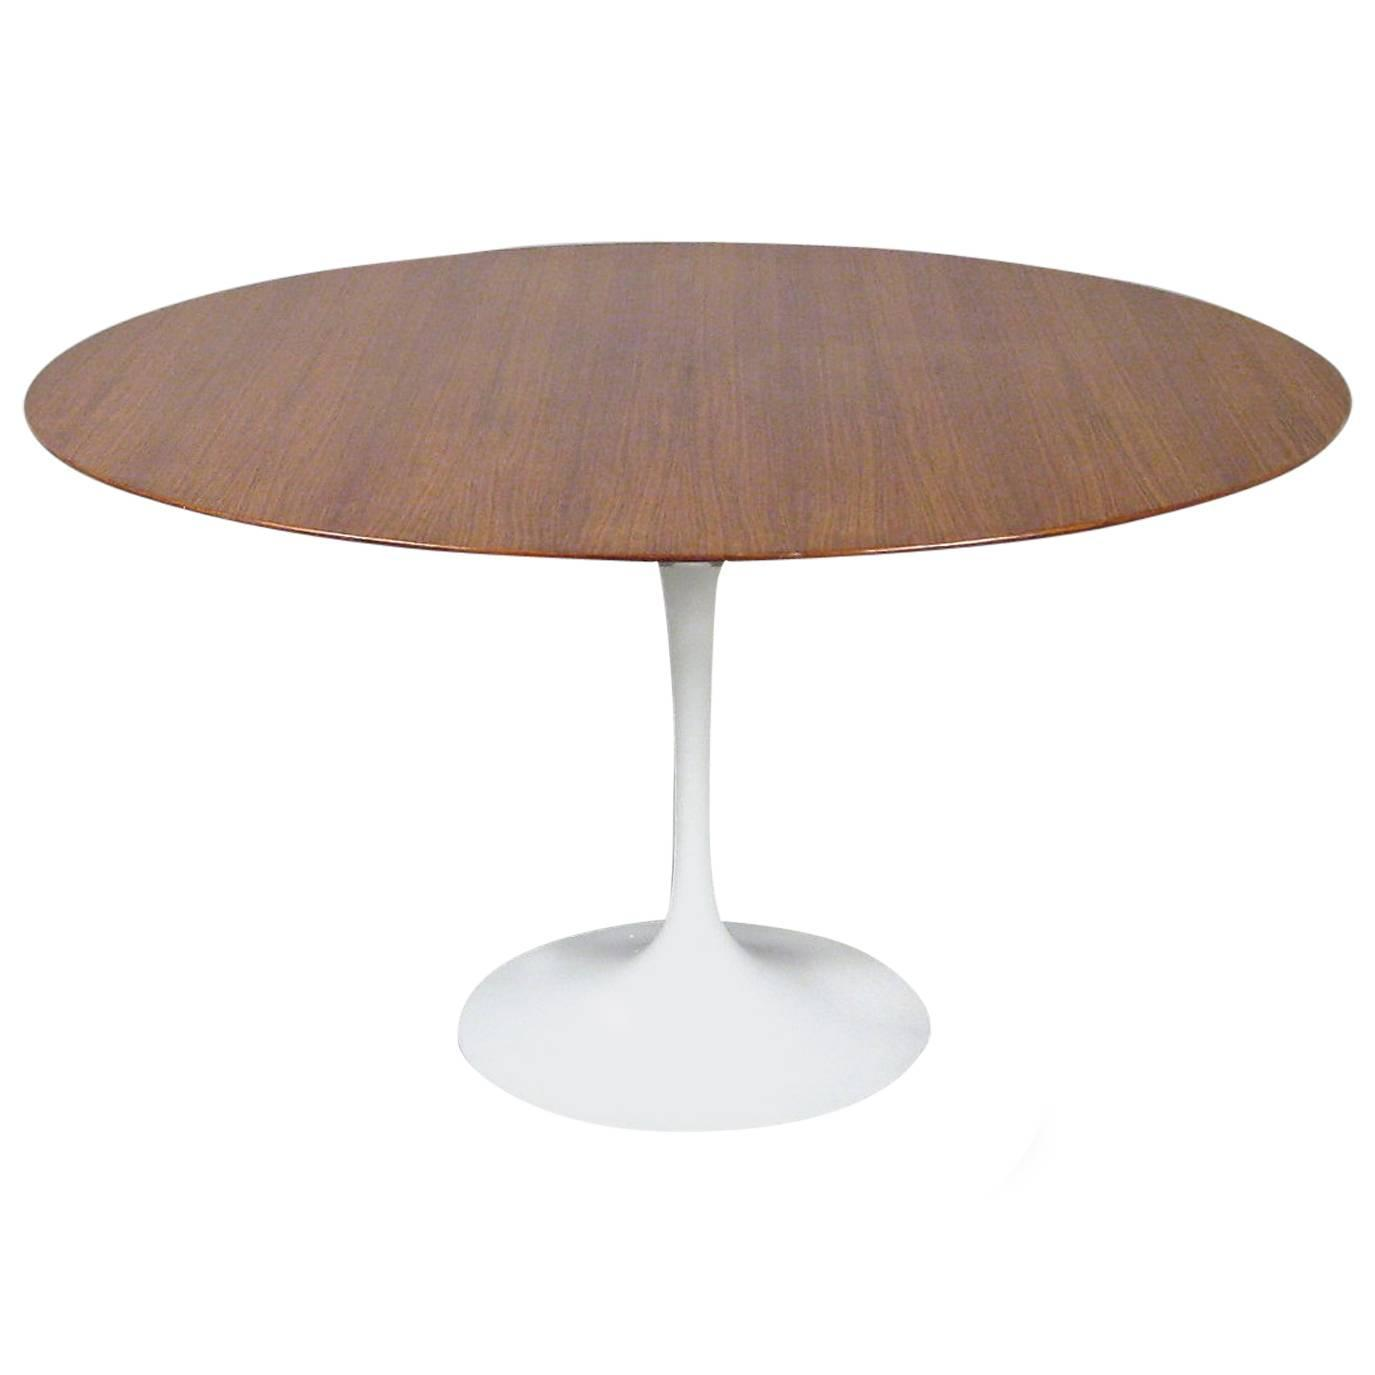 eero saarinen tulip dining table by knoll circa 1960 for sale at 1stdibs. Black Bedroom Furniture Sets. Home Design Ideas